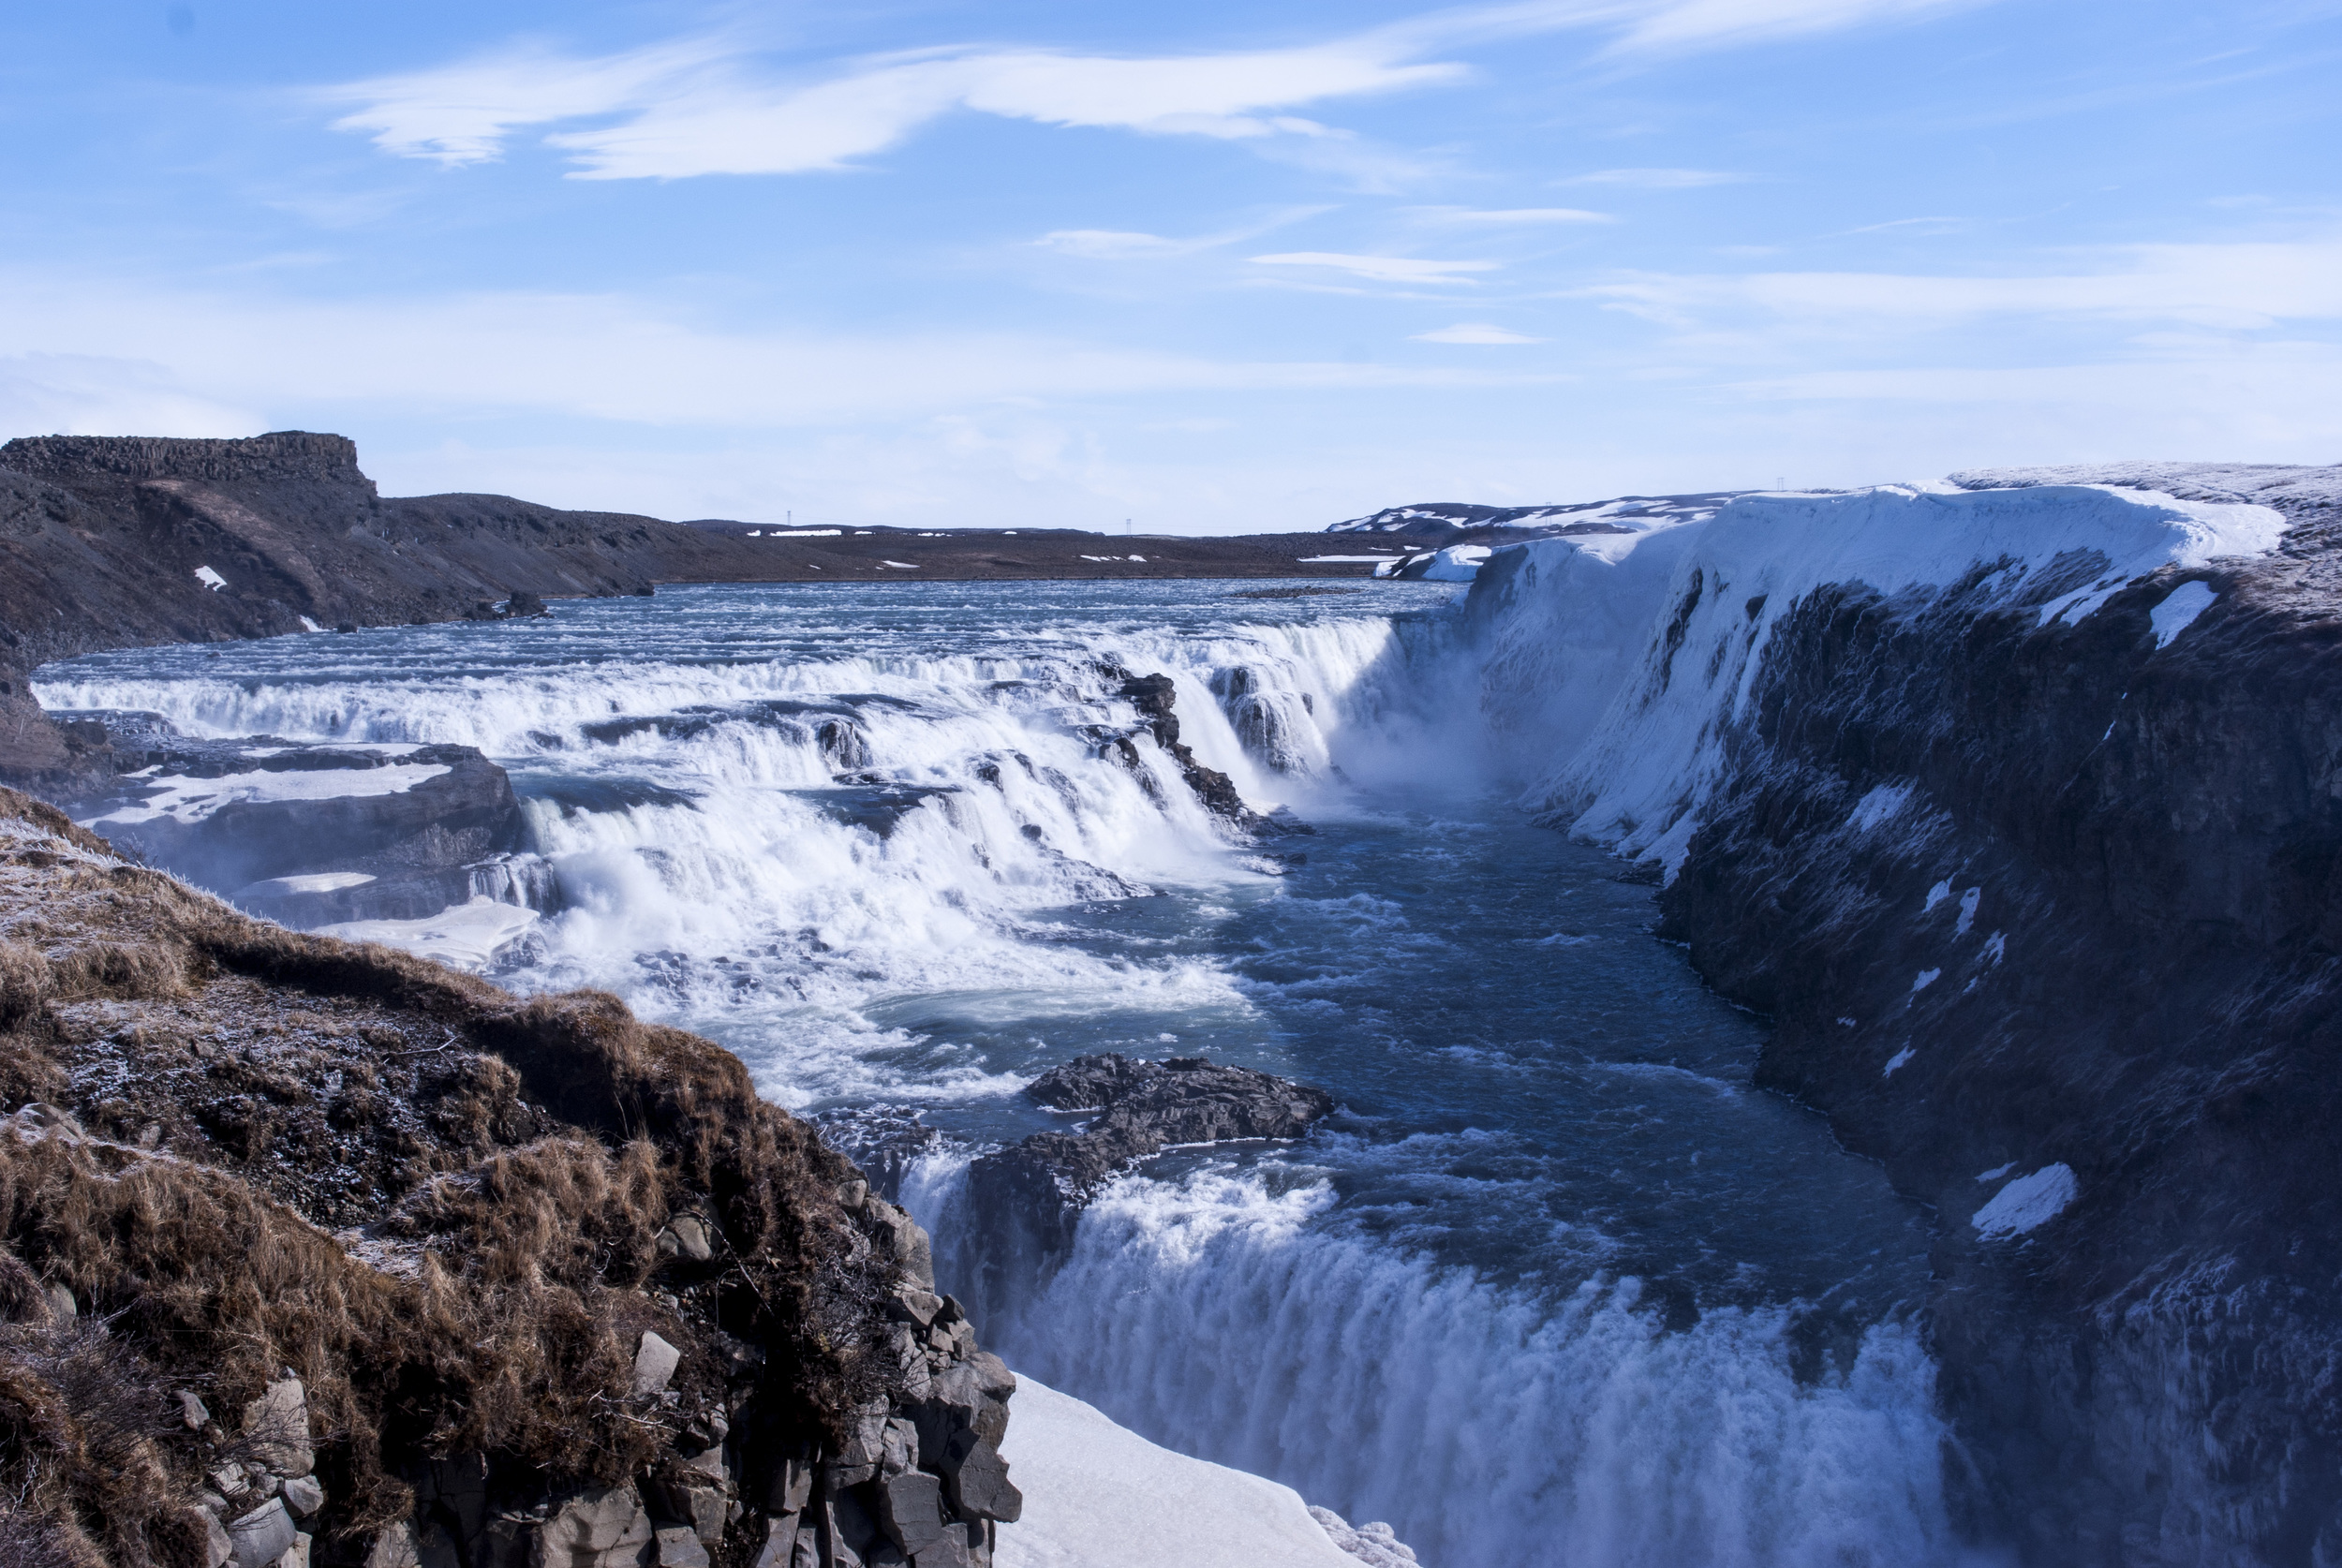 This waterfall, Gullfoss, was the most impressive to me!